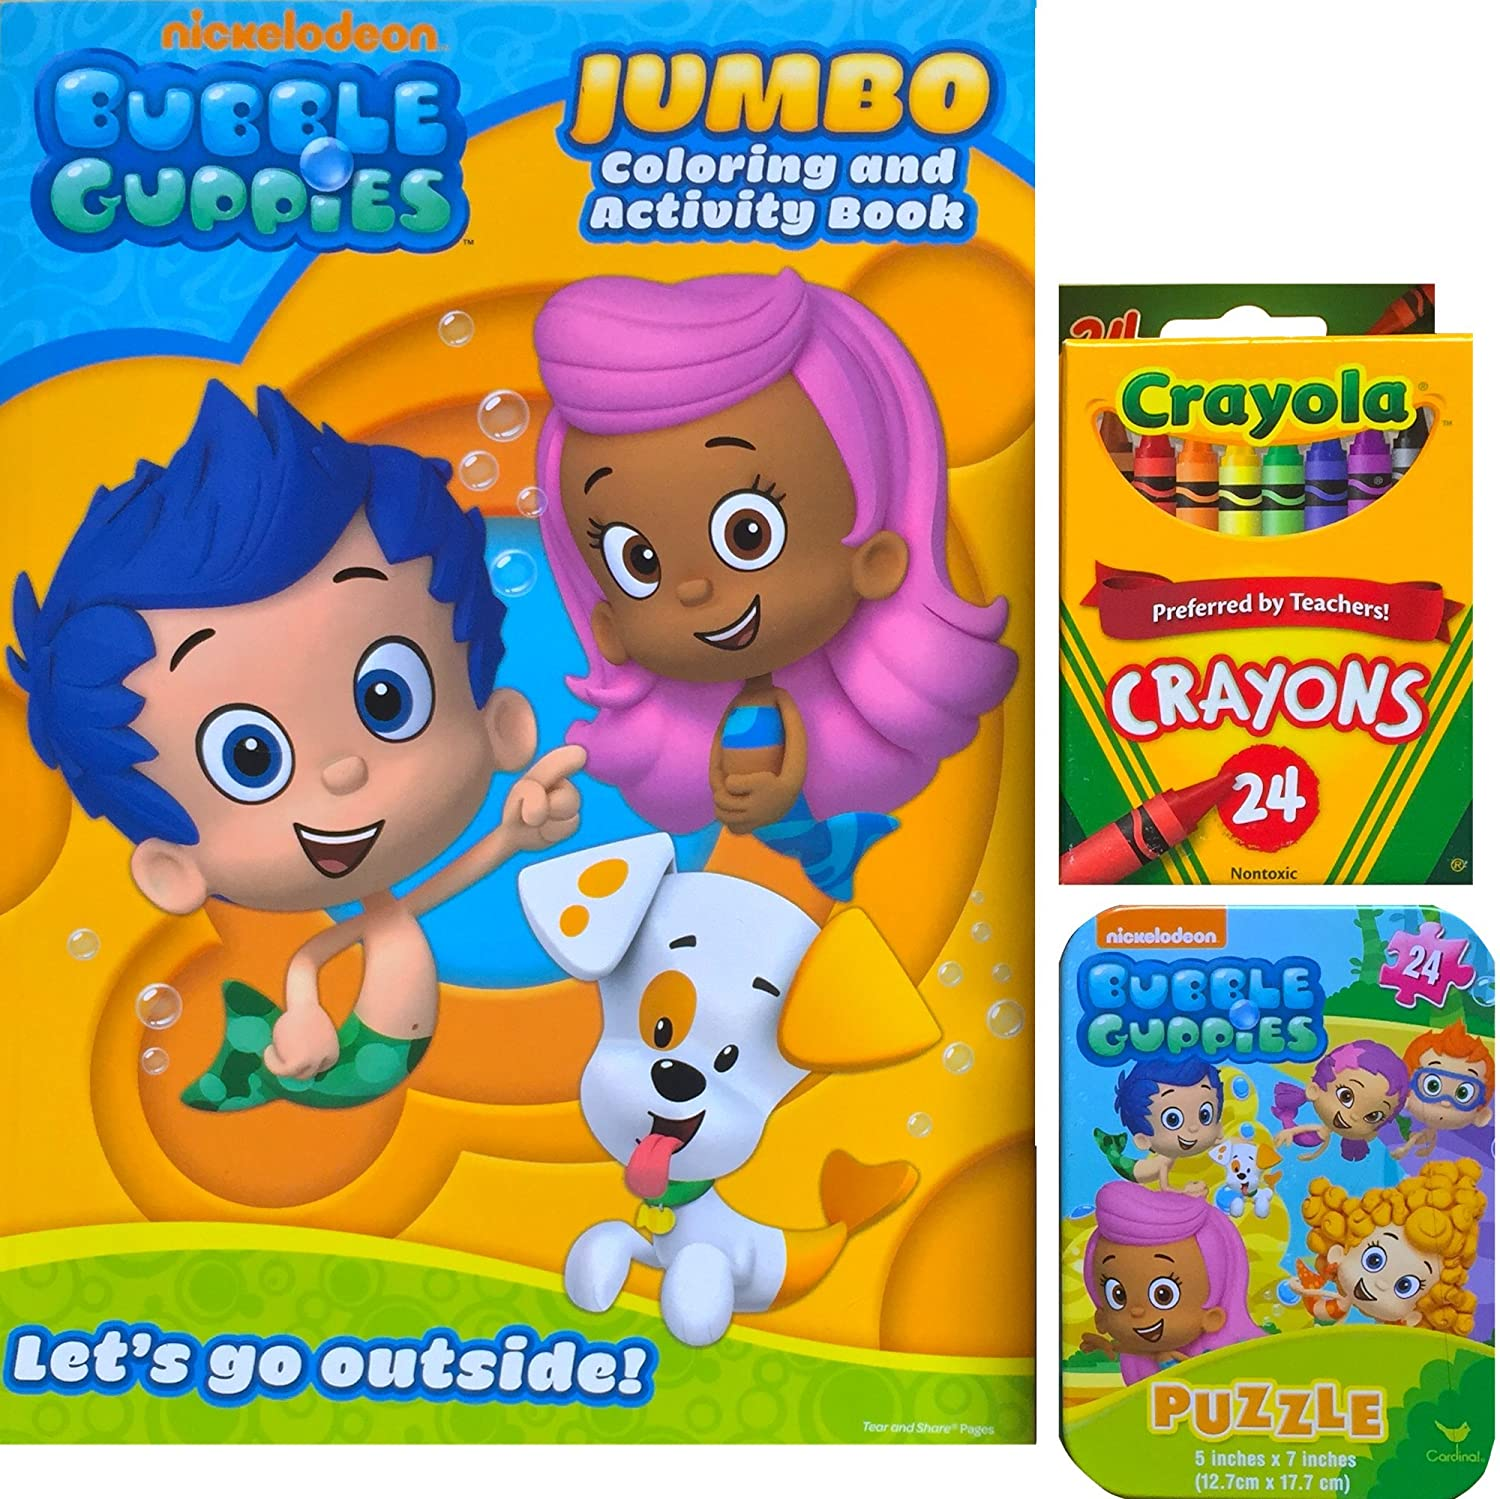 Amazon Bubble Guppies Jumbo Coloring and Activity Book with